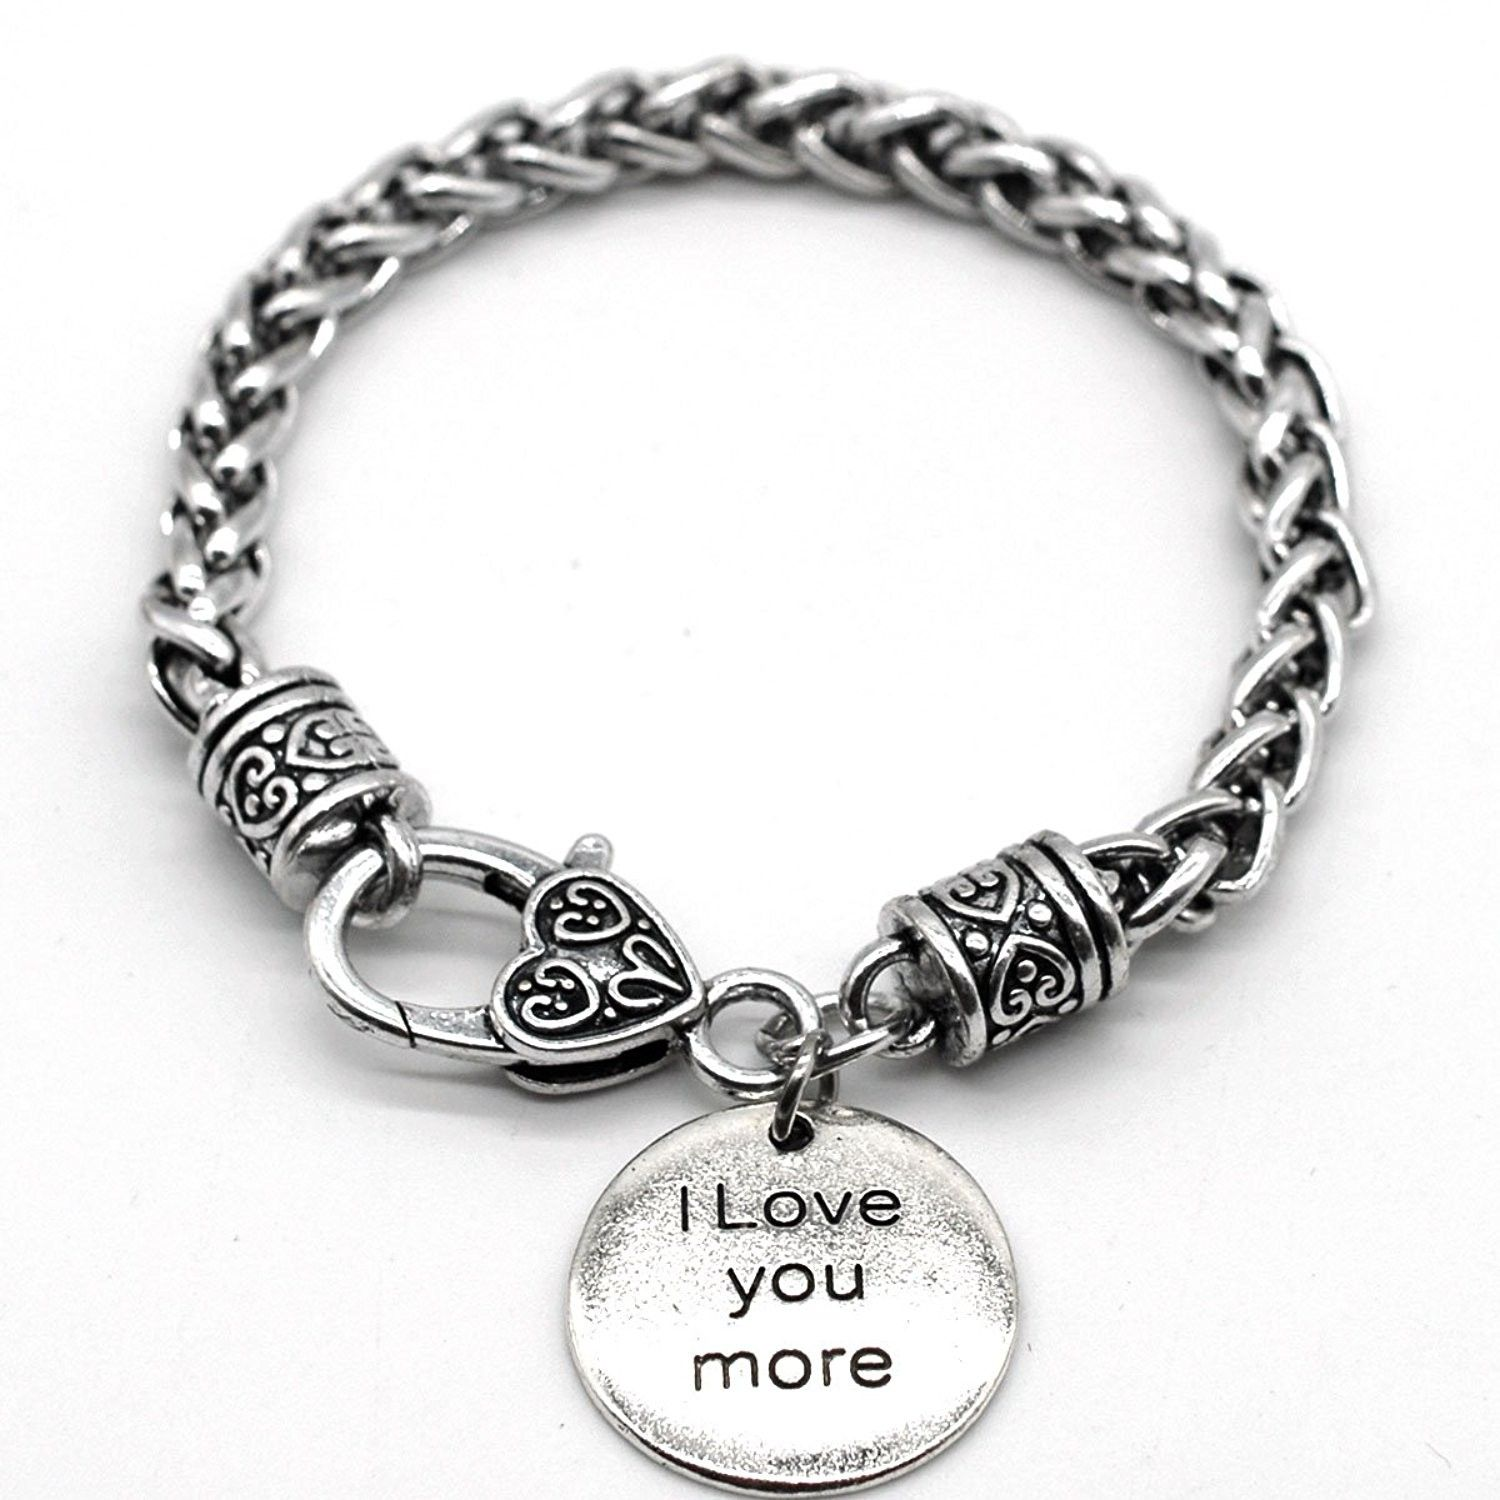 Antique silver tone braid inspiration bracelet i love you more